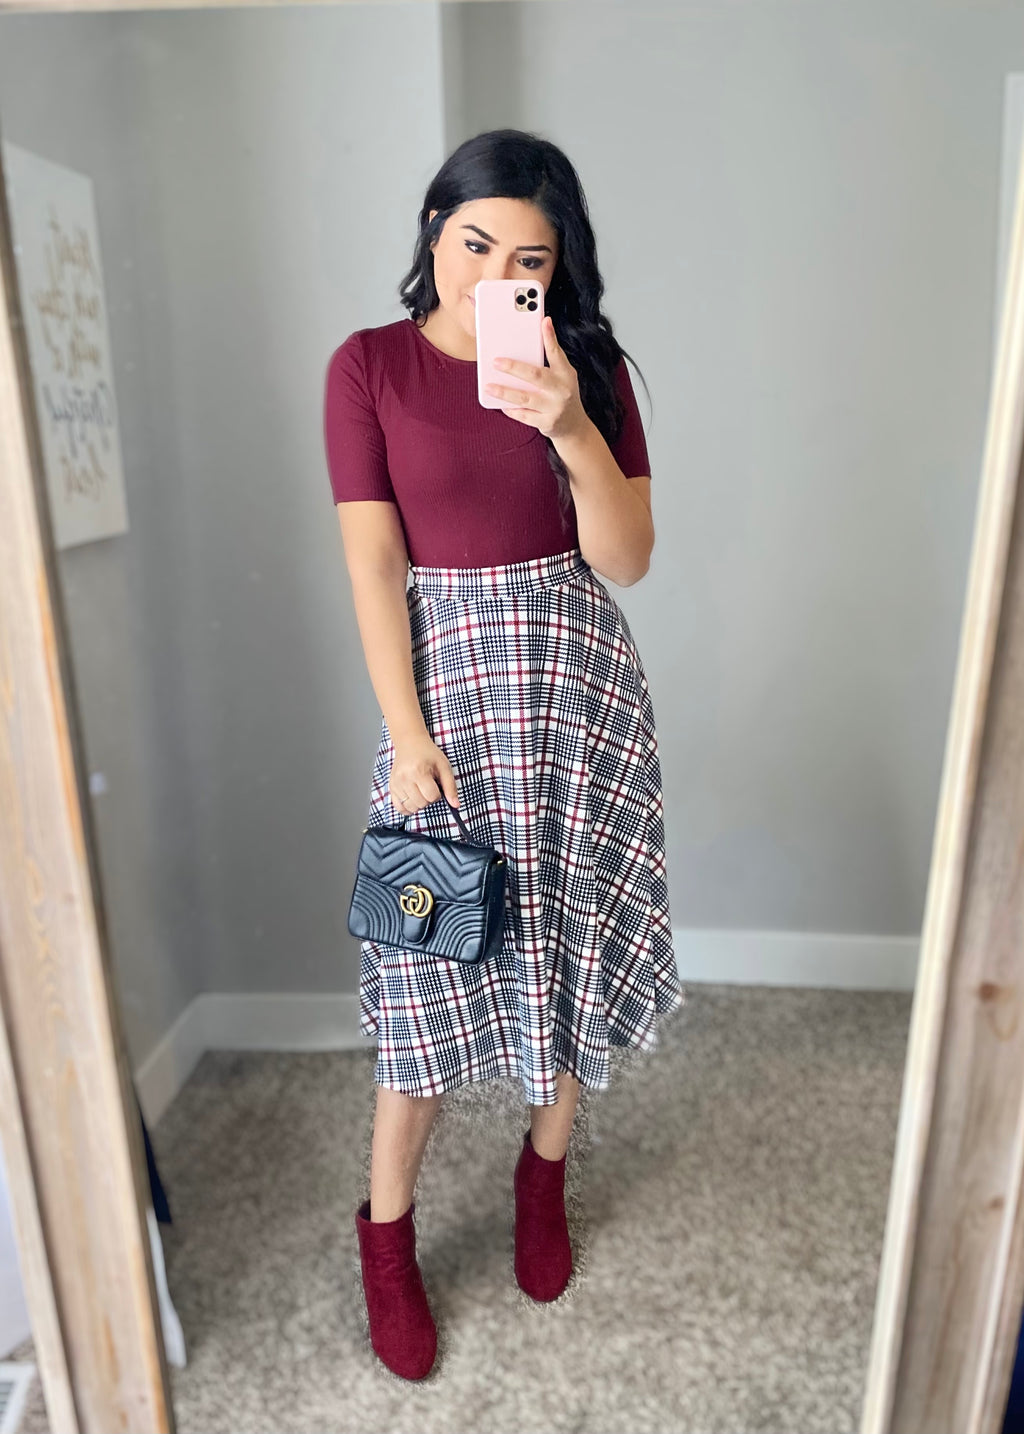 Merry Plaid Skirt (Pre-Order ships on 12/4)